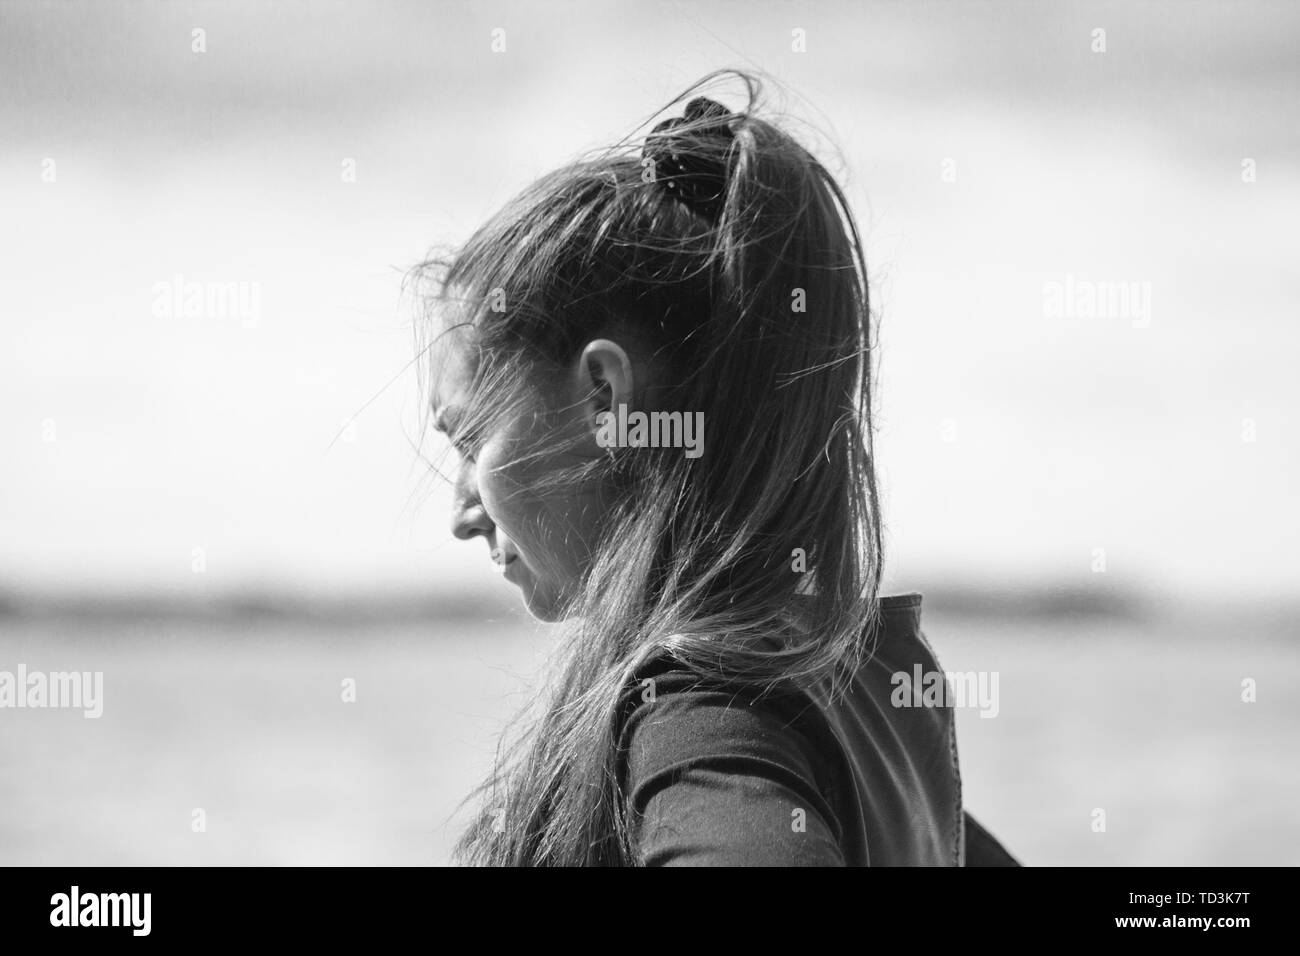 Half-face portrait young woman with long dark ponytail hair fluttering in the wind against the backdrop of the sea. Black and white processing Stock Photo